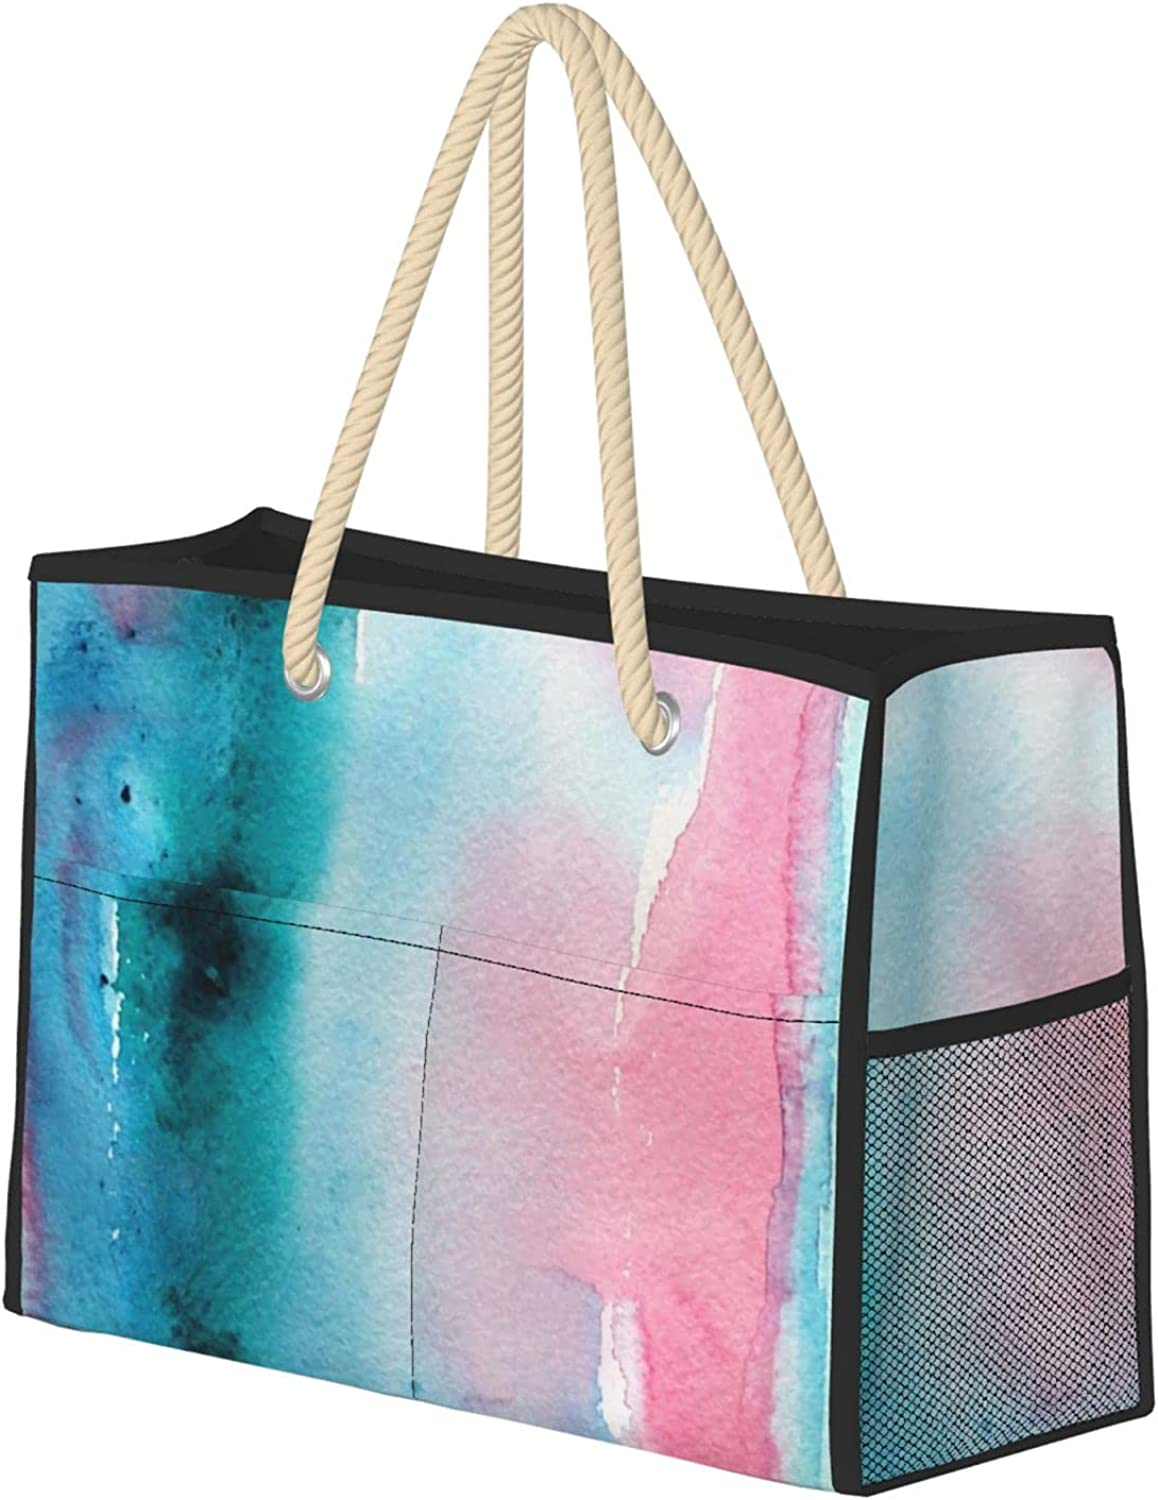 Large Max 44% OFF Beach Bag Travel for Pool - with Tote Women Max 77% OFF